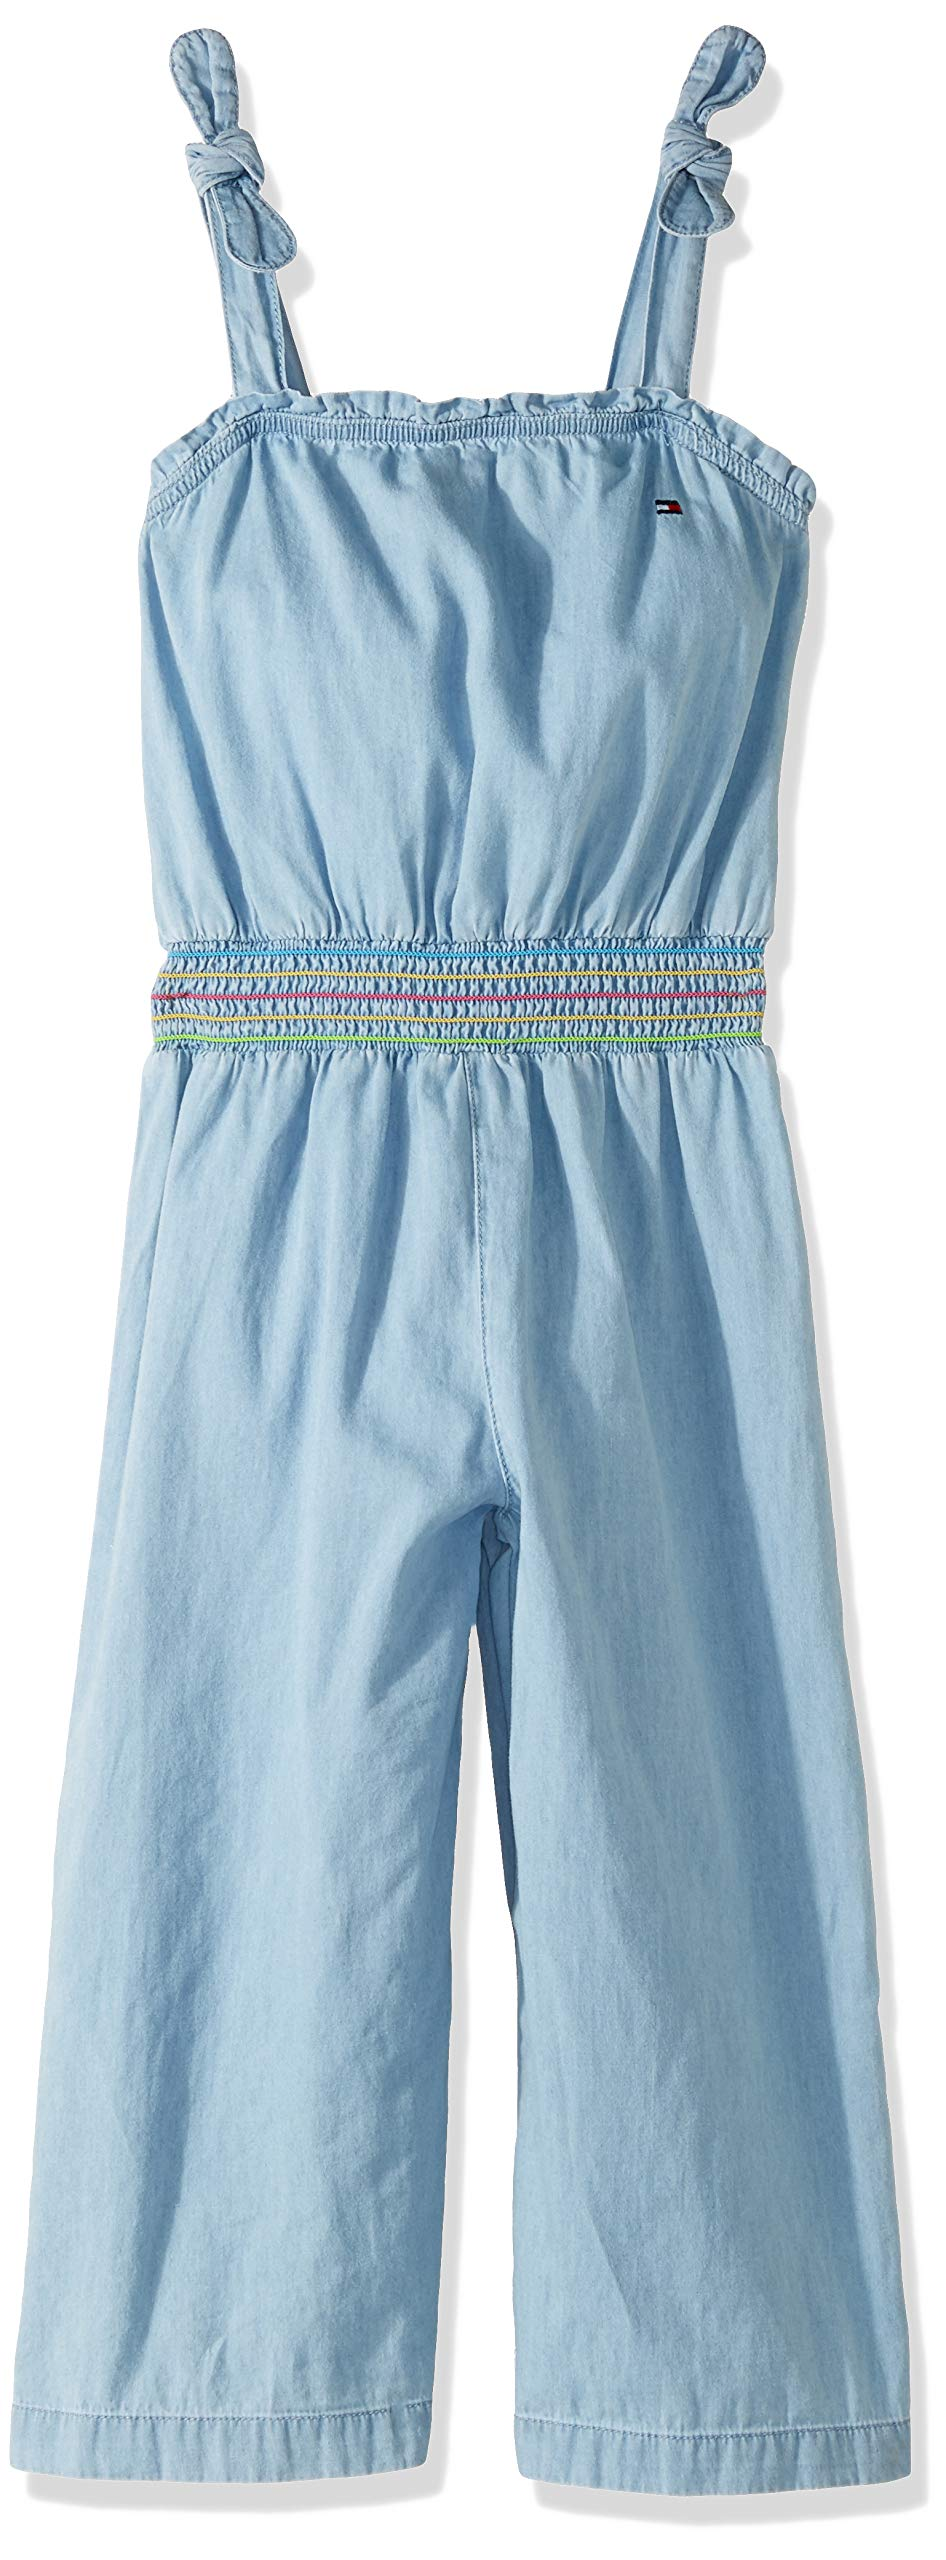 Tommy Hilfiger Big Girl's Big Girls' Fashion Jumpsuit Shorts, denim bowery, S7 by Tommy Hilfiger (Image #1)